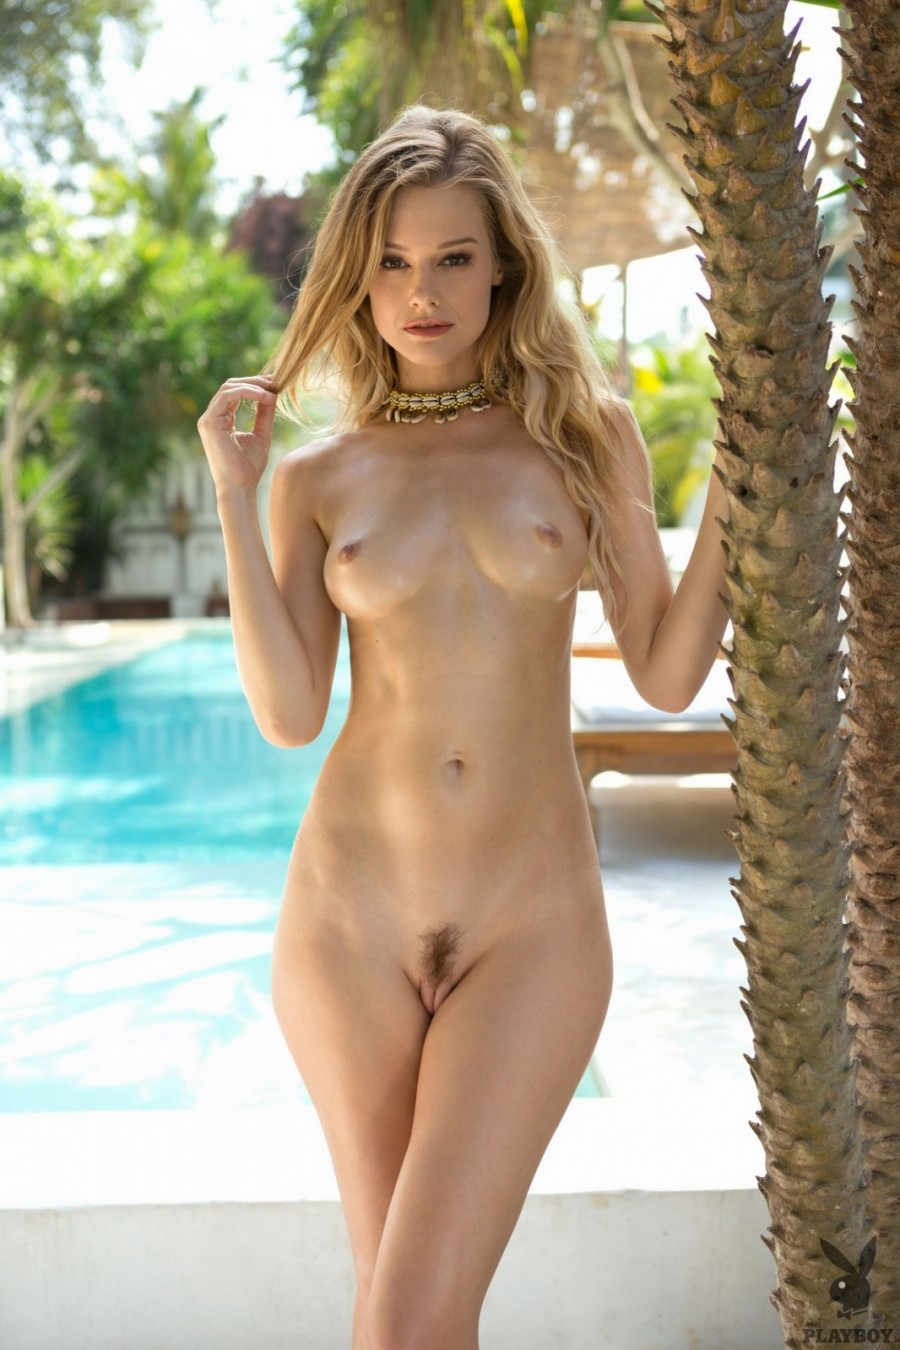 Delightful blonde got nude by the pool